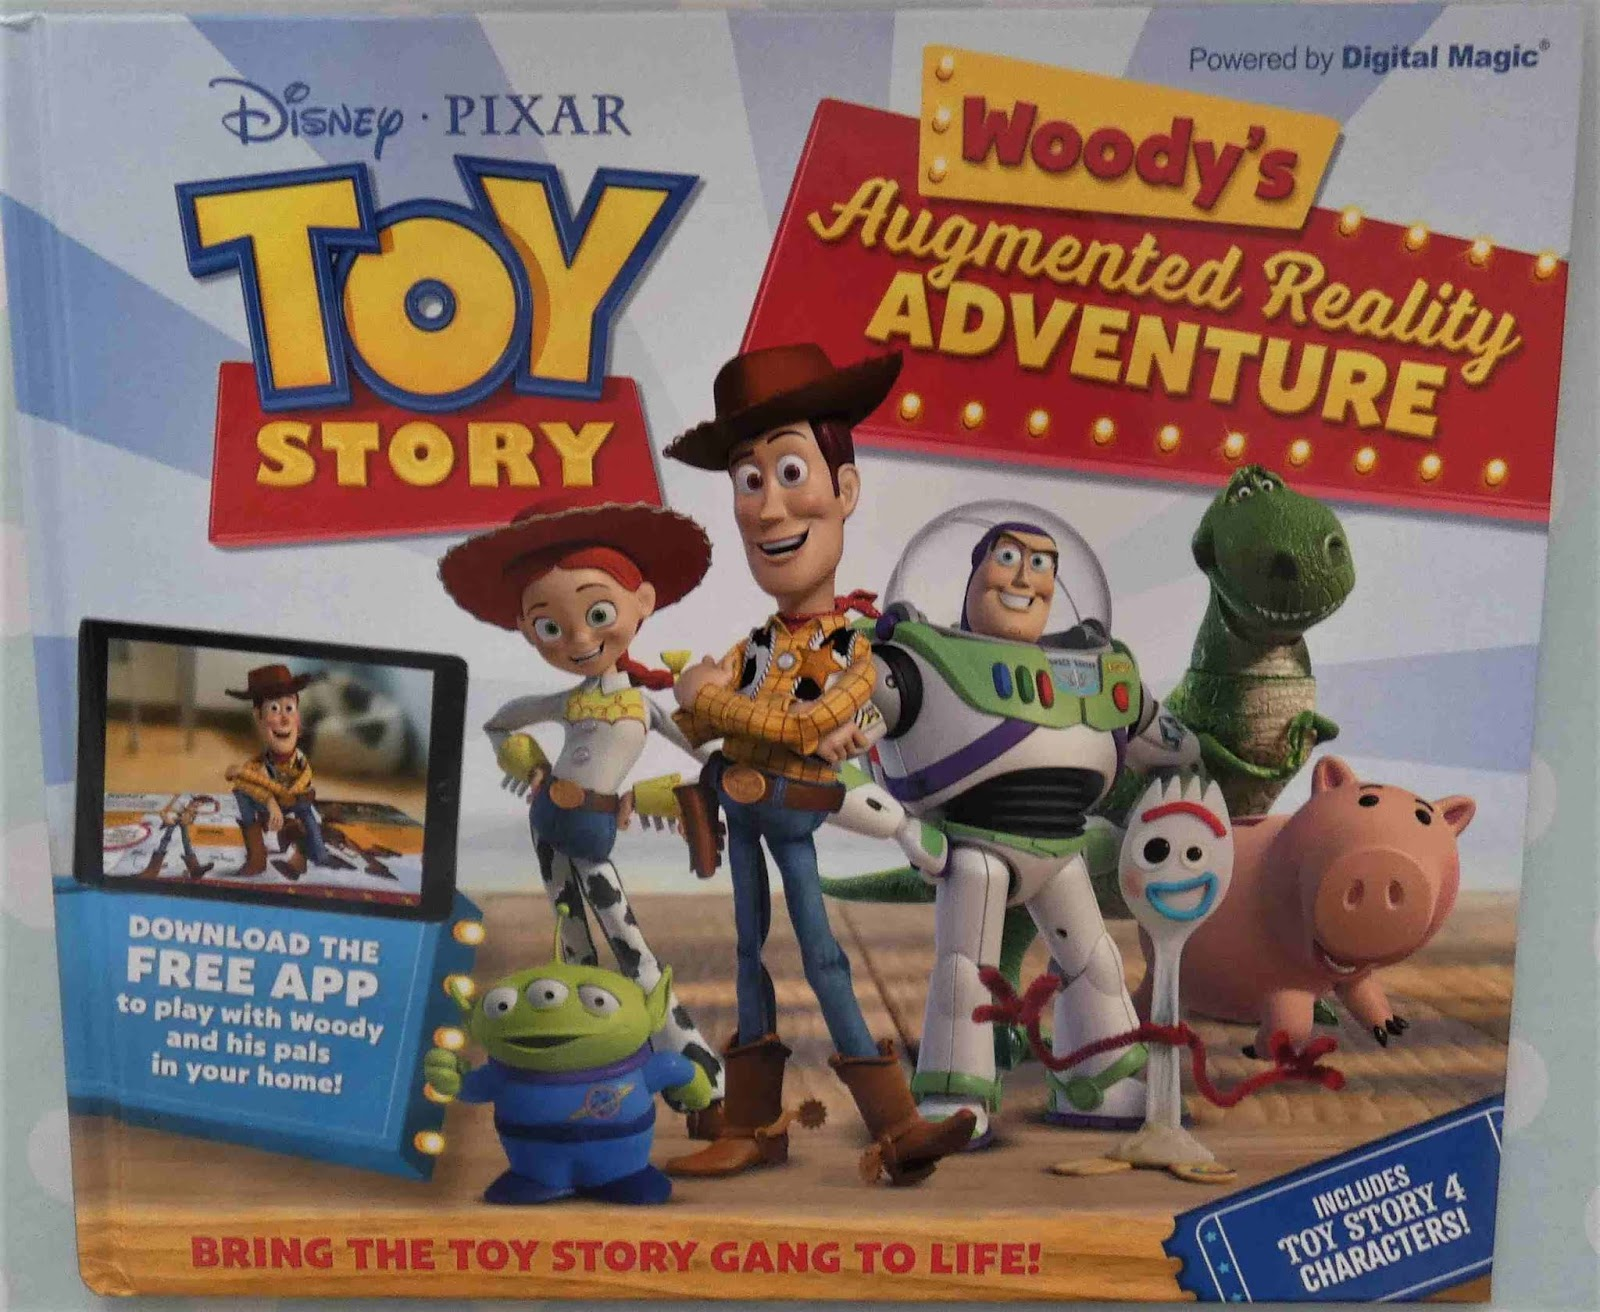 19f6486fc14 Disney Pixar Toy Story : Woody's Augmented Reality Adventure book ...